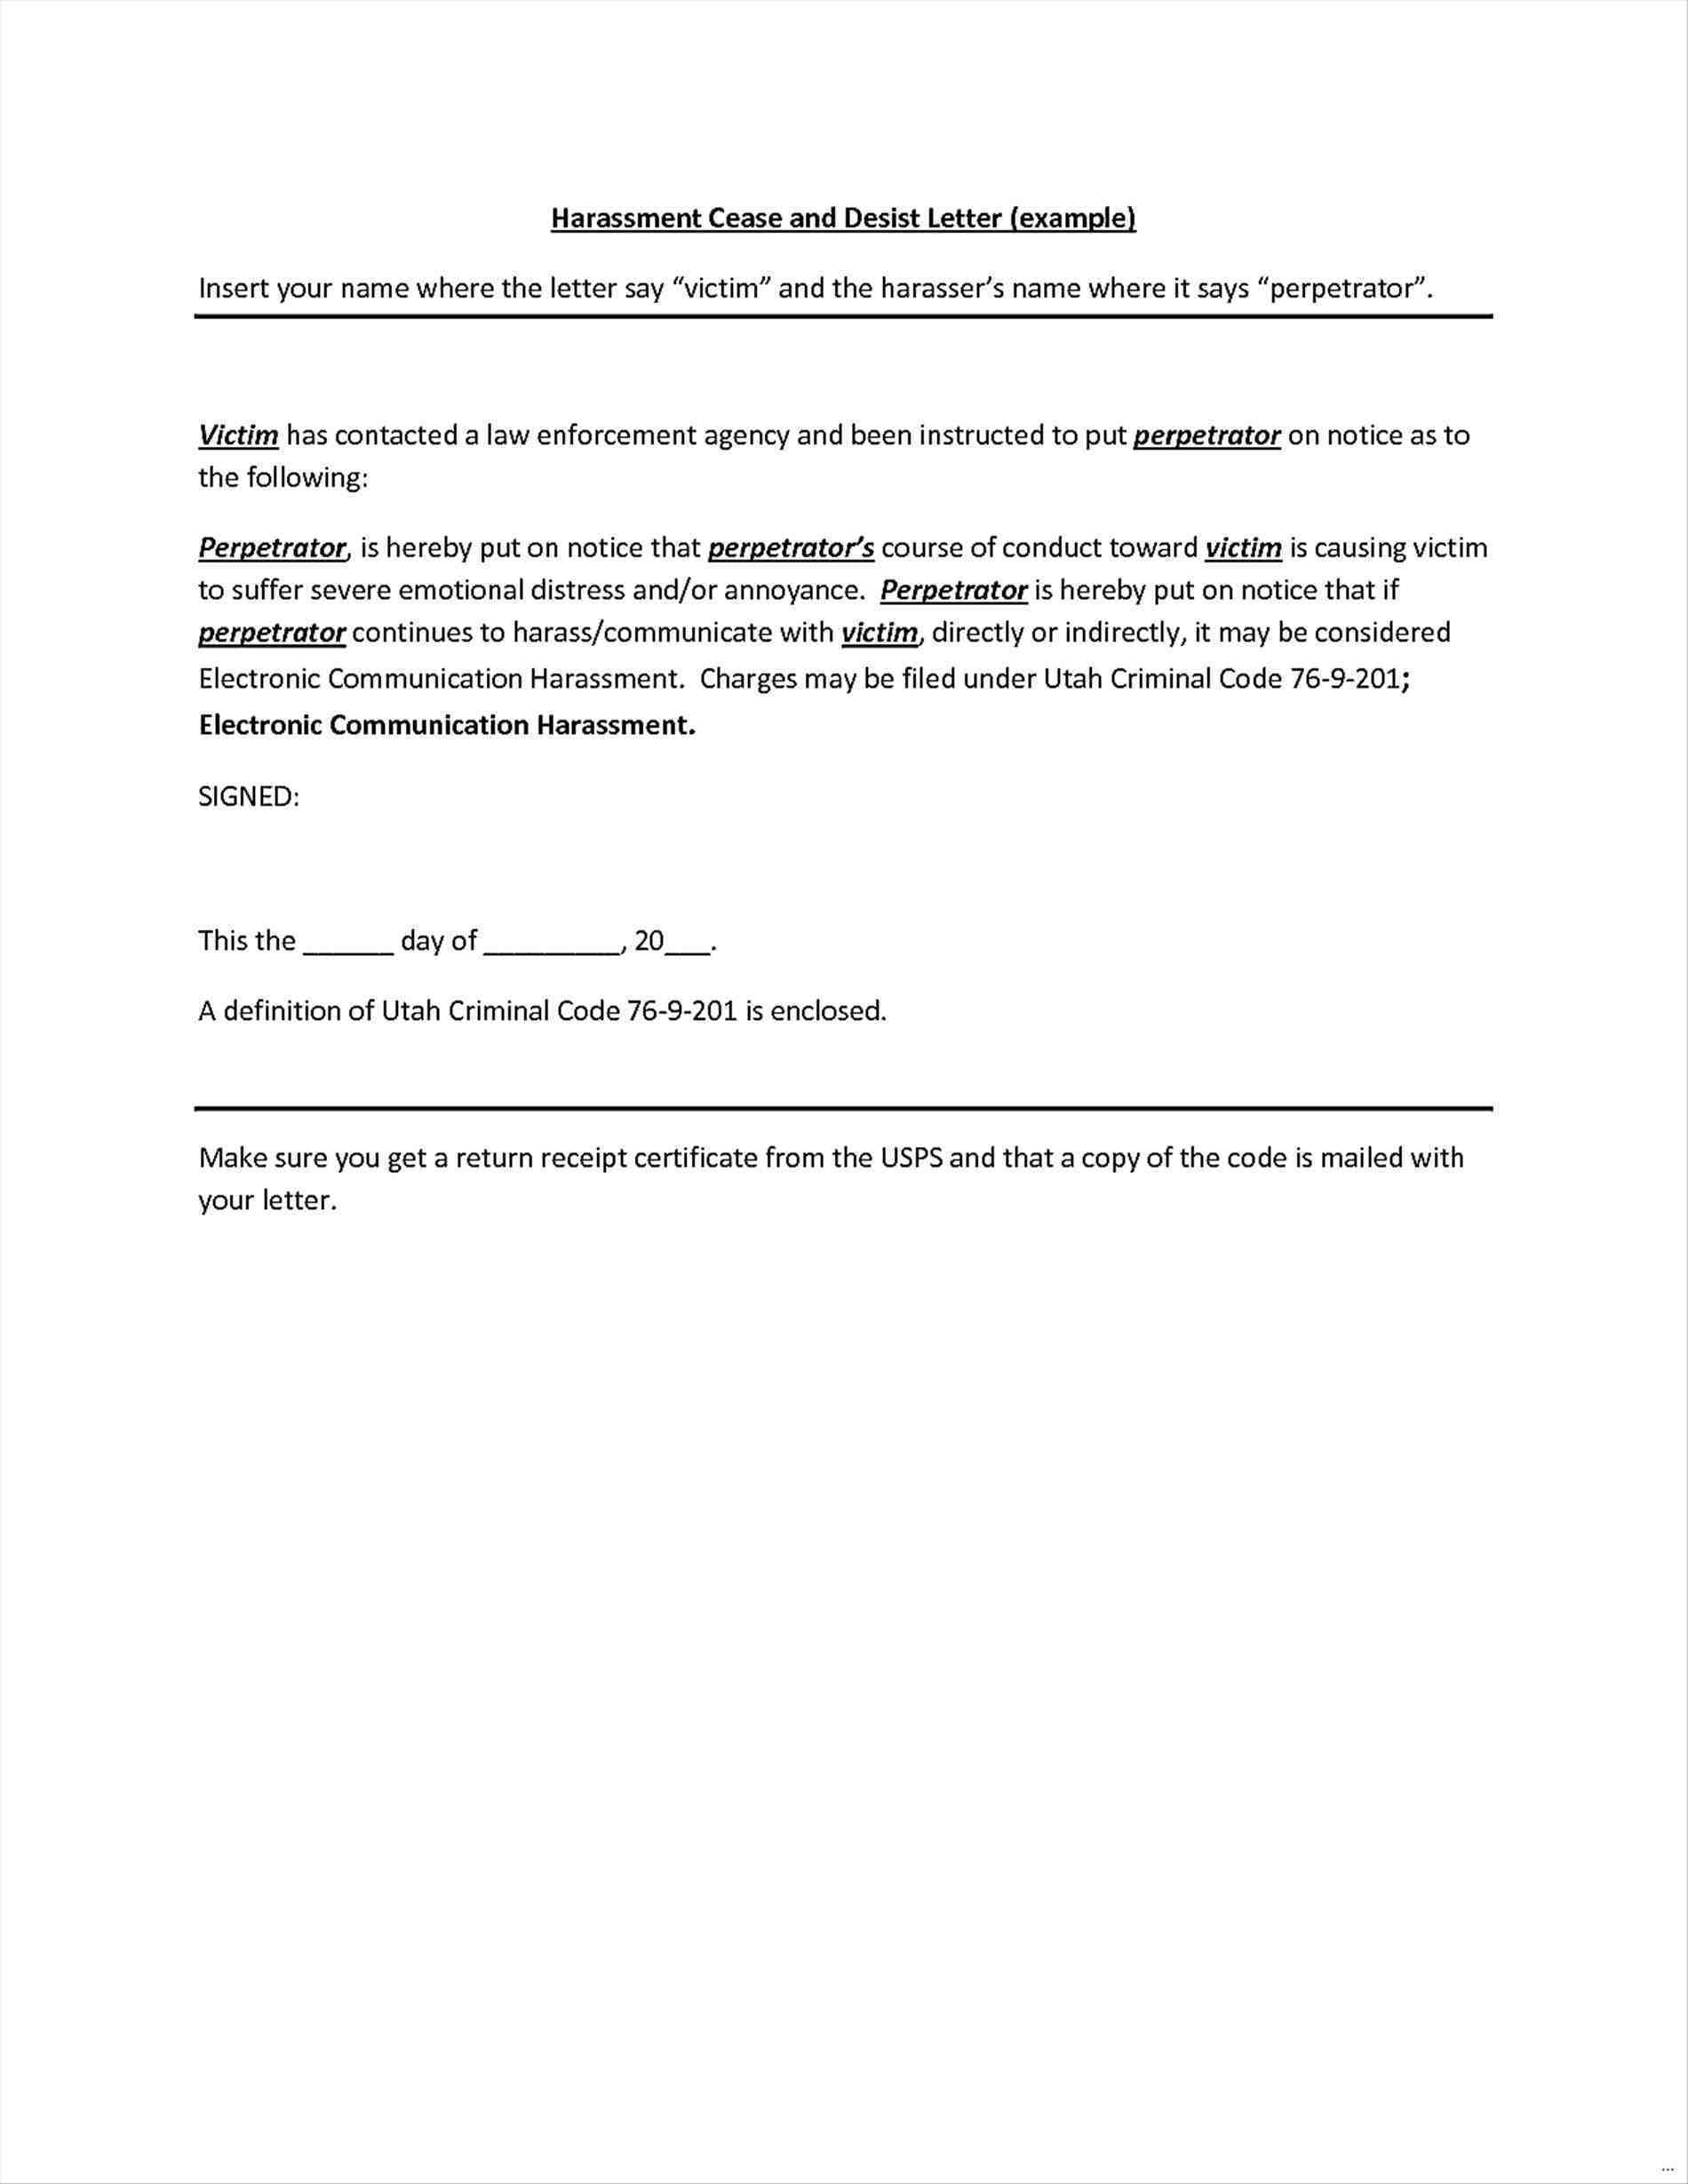 Free Cease and Desist Letter Template Canada - What is A Cease and Desist Letter Awesome Cease and Desist Template